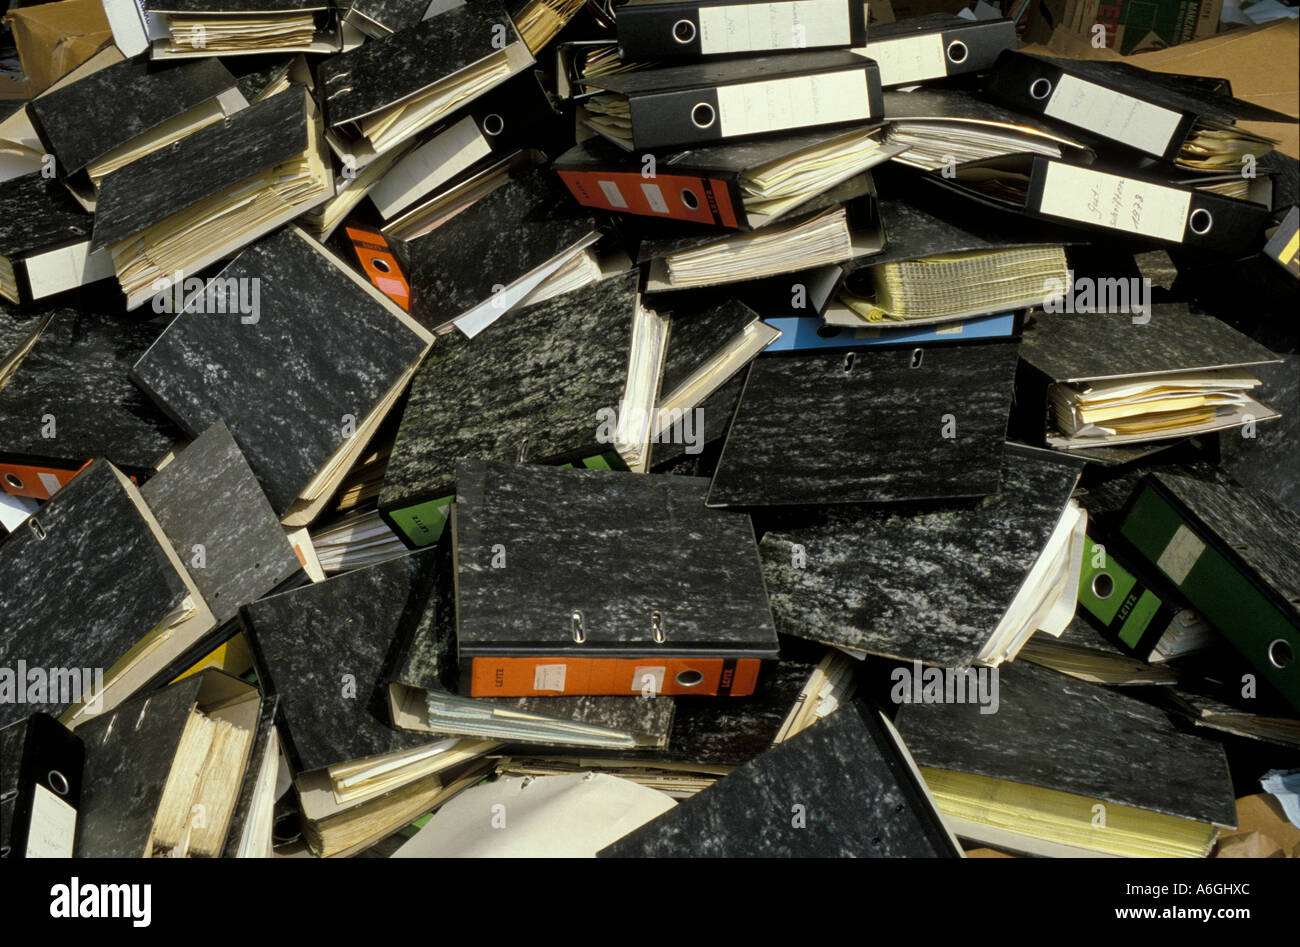 Heap of thrown away files, office waste - Stock Image